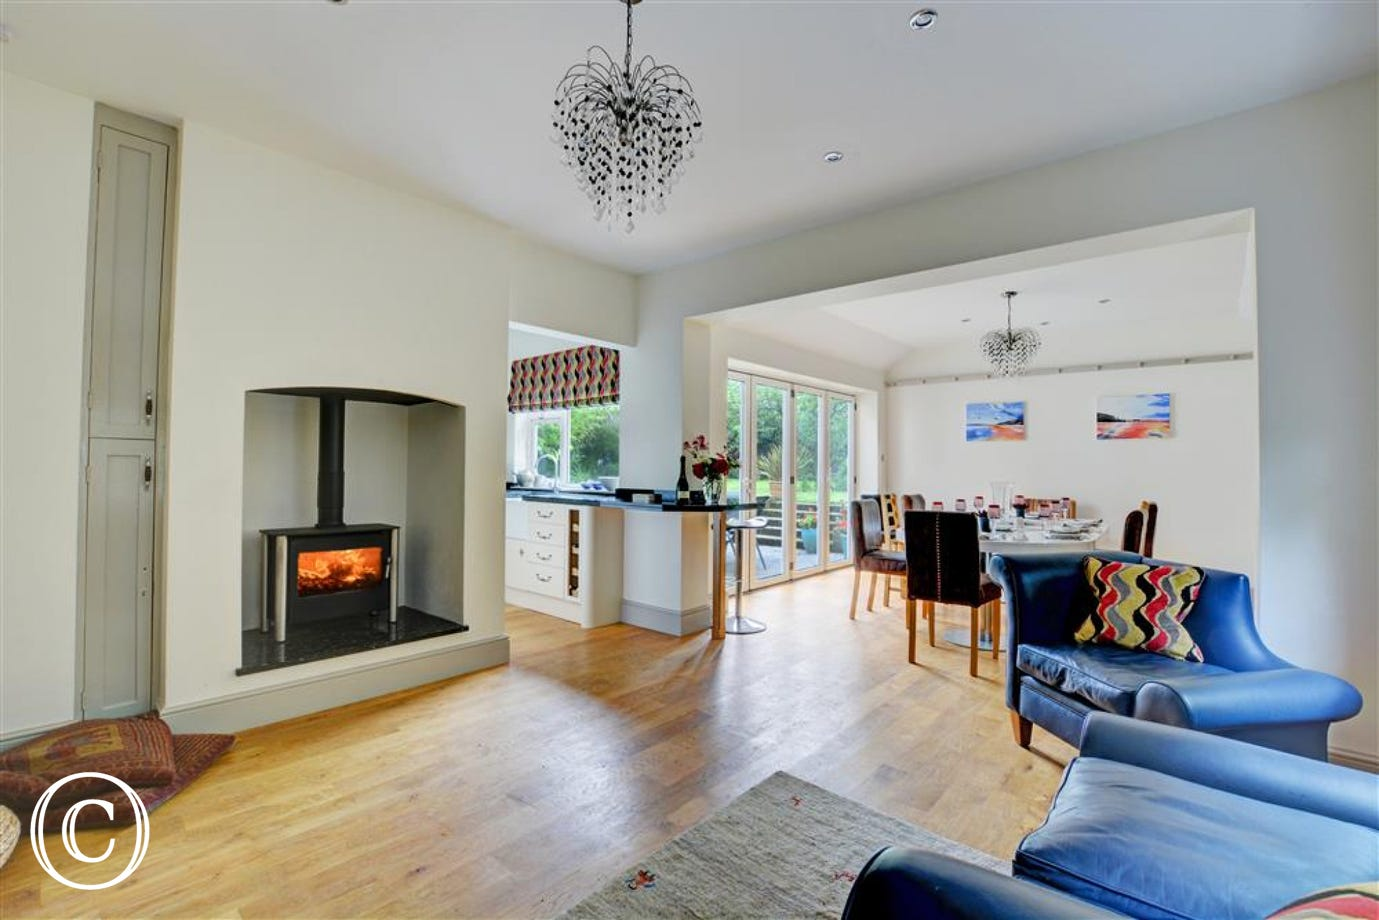 The open plan living room has a gas living flame fire